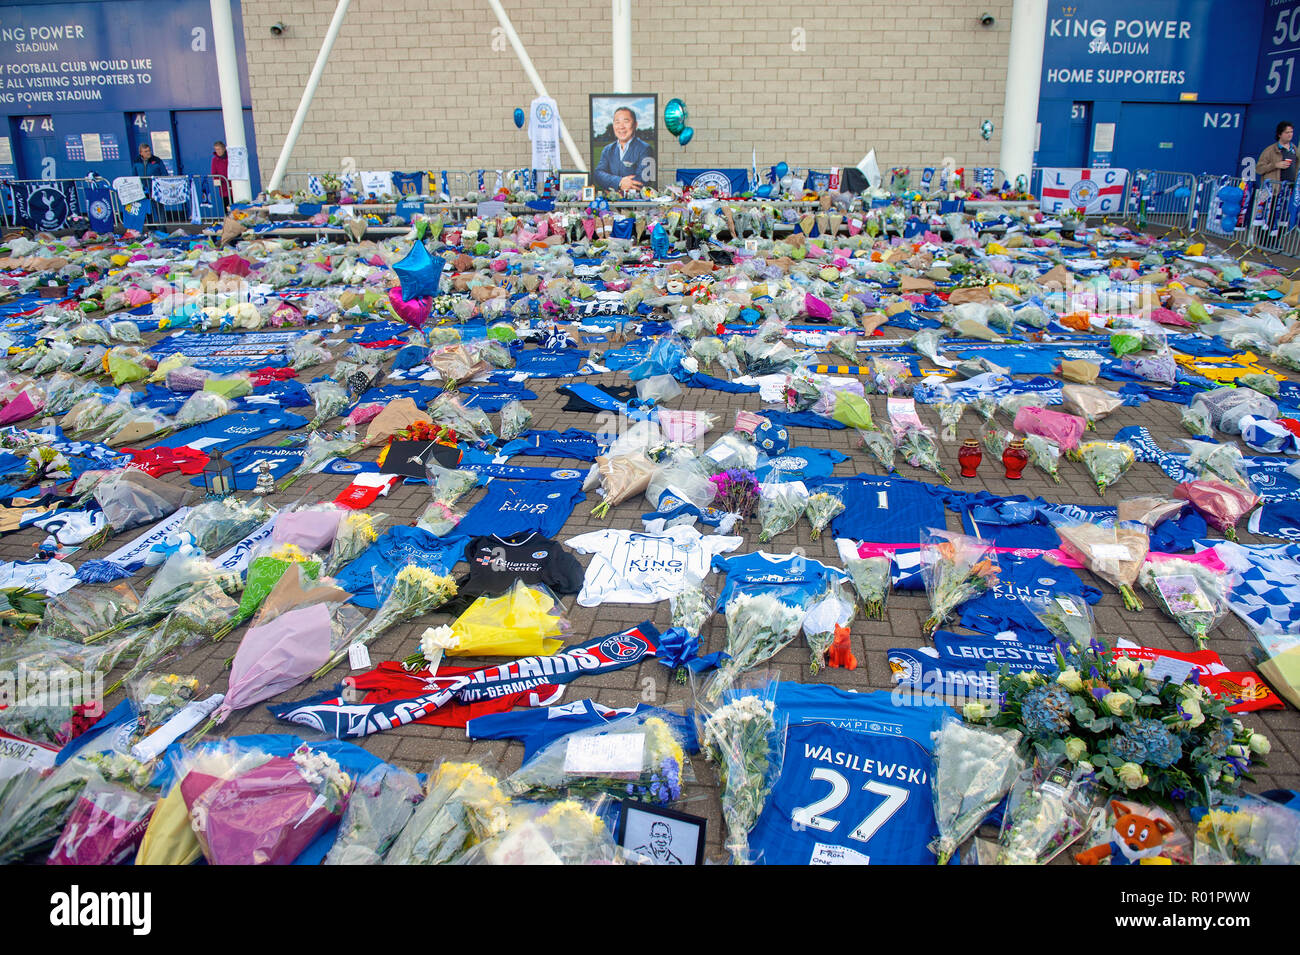 Leicester, UK. 31 October 2018. Tributes laid by Leicester City Football Club fans at the King Power stadium after the death of owner Vichai Srivaddhanaprabha. Stock Photo